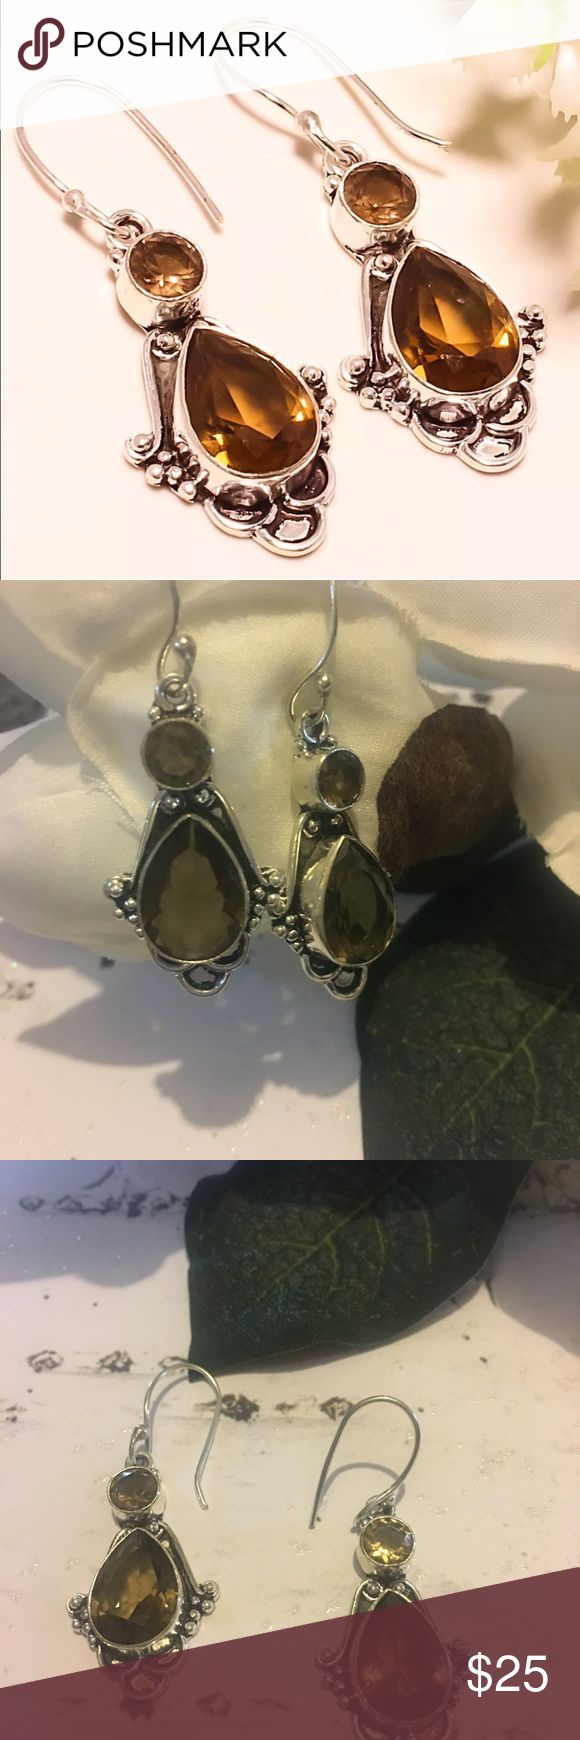 ⚜️Smoky Topaz Earrings⚜️ ⚜️Smoky Topaz Earrings⚜️ Stone of Balance helps to relieve emotional blockages while enhancing your perception and intuition⚜️925 stamped silver⚜️L 1.87 weight 8 gm⚜️Hook fastenings⚜️Measurements are approximate and colors may vary⚜️ Jewelry Earrings